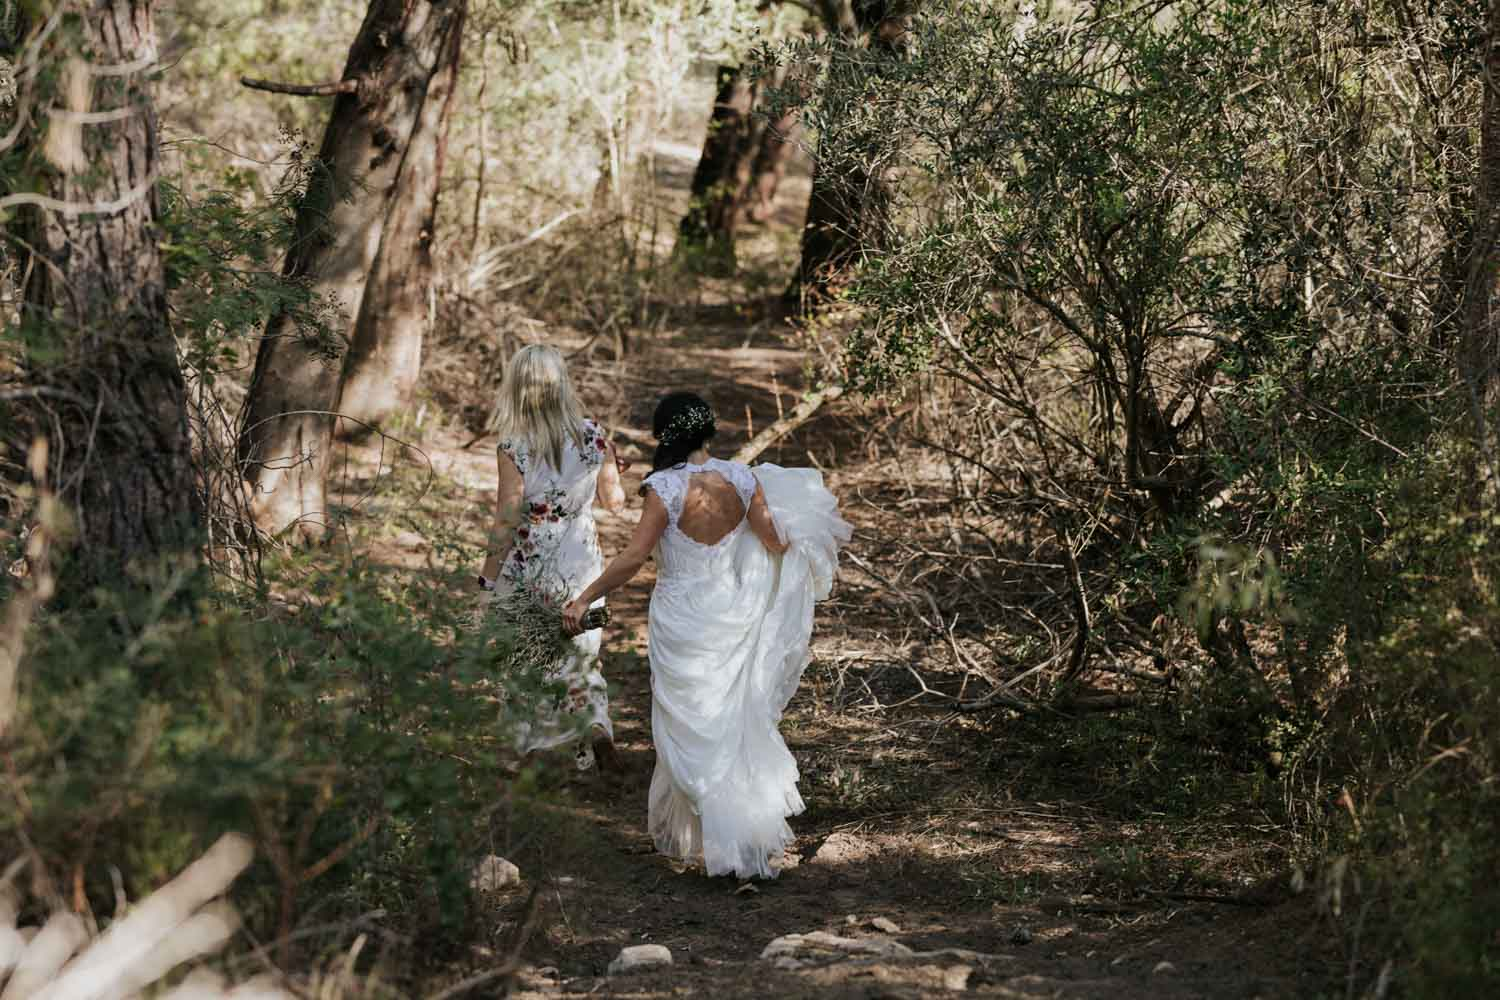 Bride and bridesmaid walking through the forest on the way to get married under the trees, in Tulbagh, Cape Town.